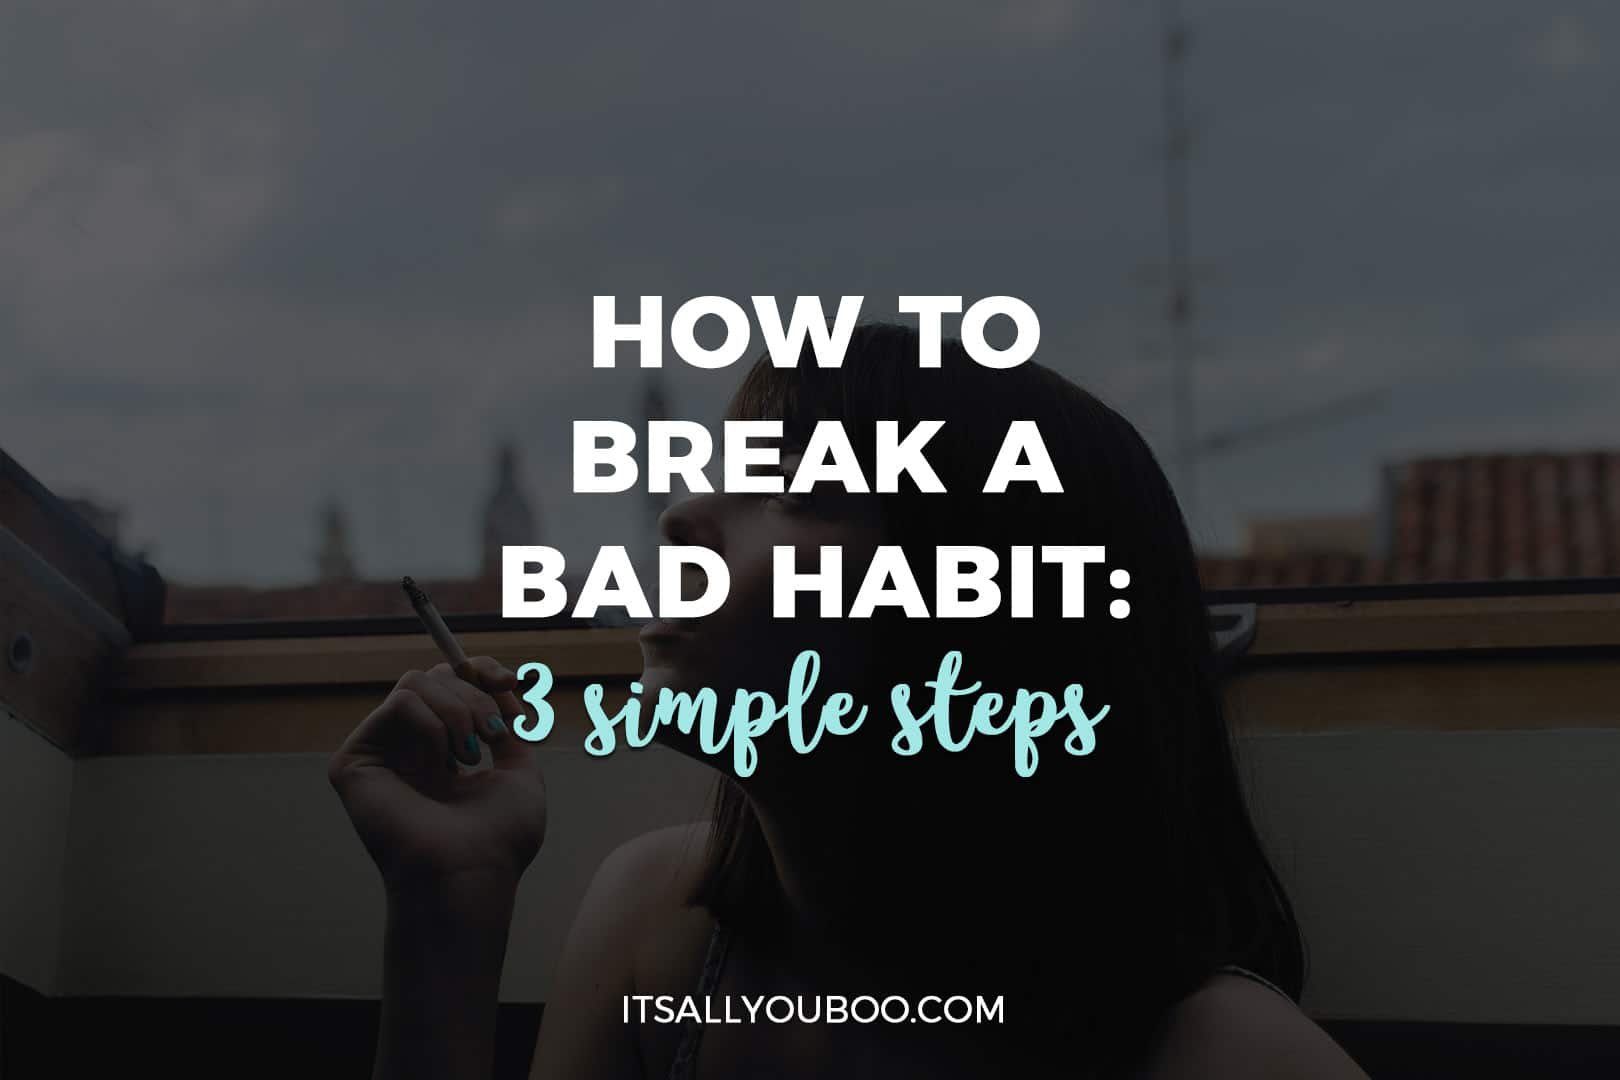 How To Break a Bad Habit: 3 Simple Steps